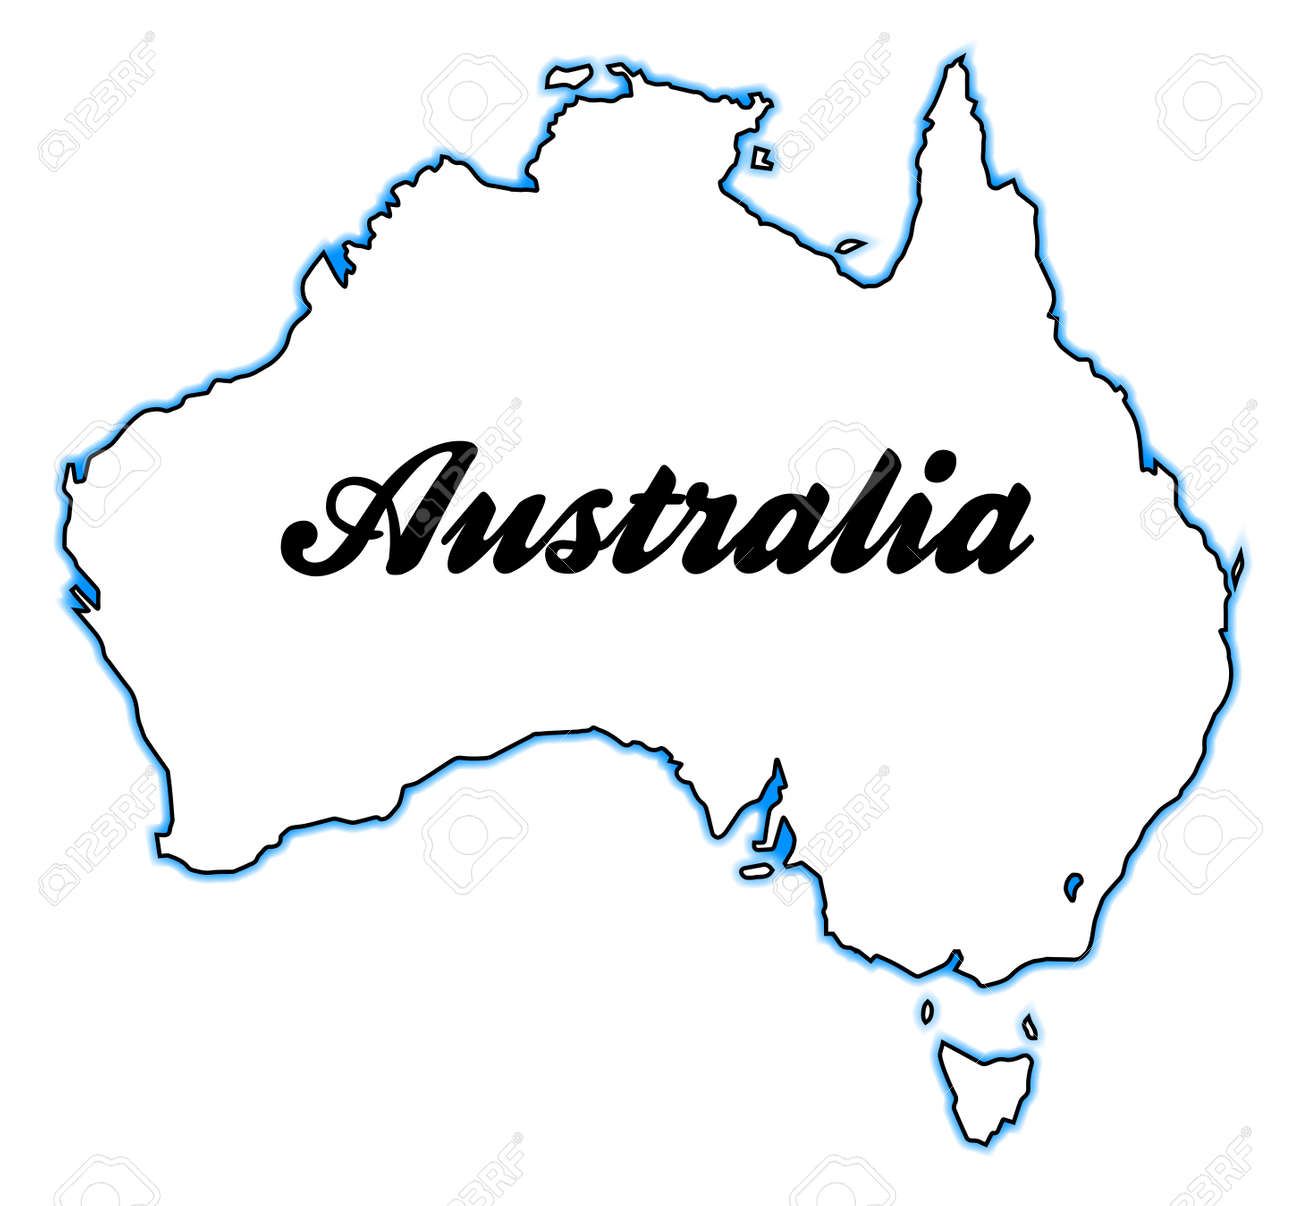 Australia Map Outline Vector.Outline Map Of Australia Over A White Background